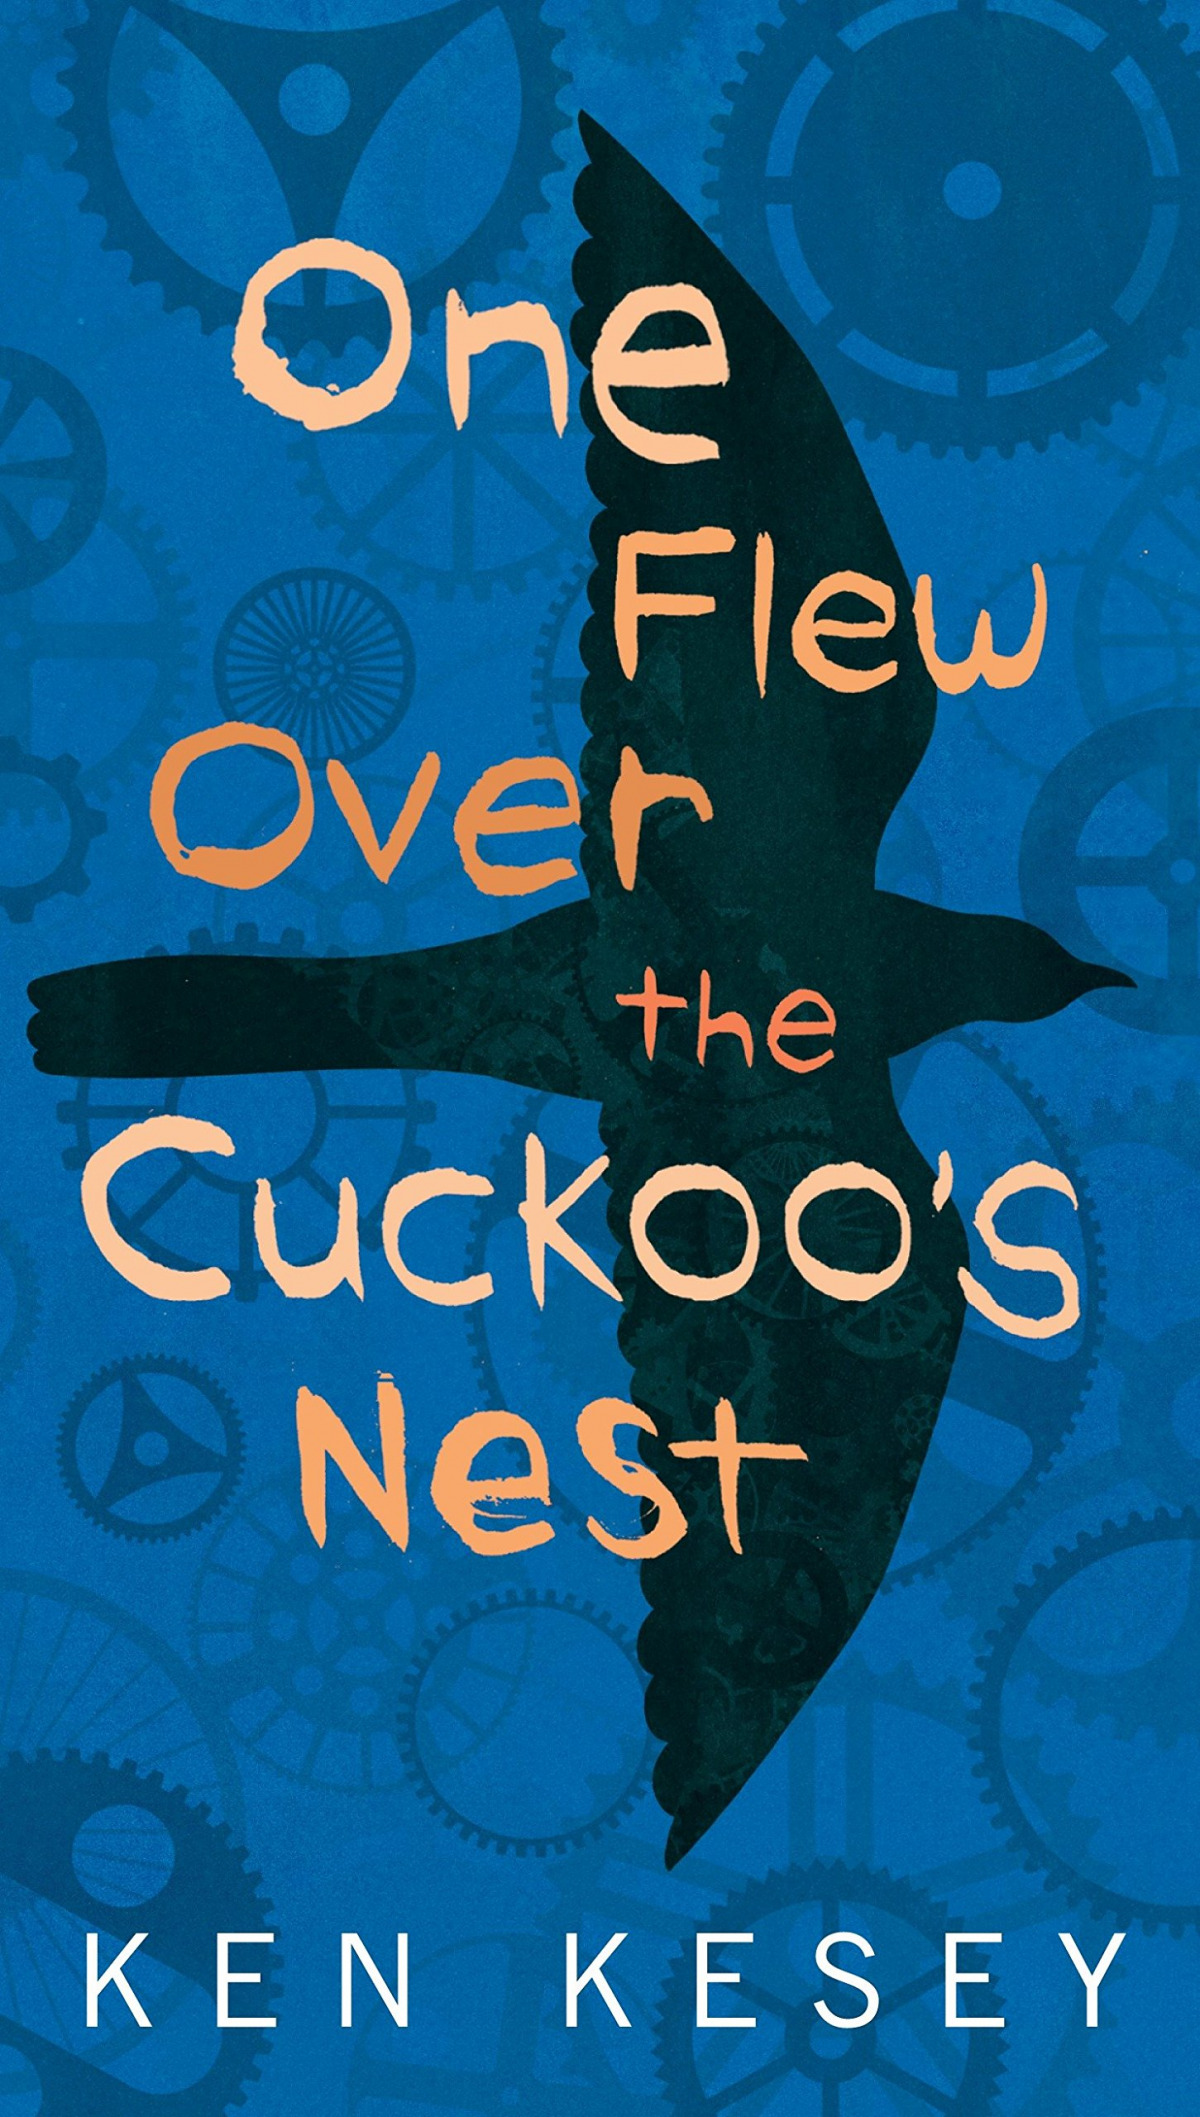 (kesey)/one flew over the cuckoo's nest